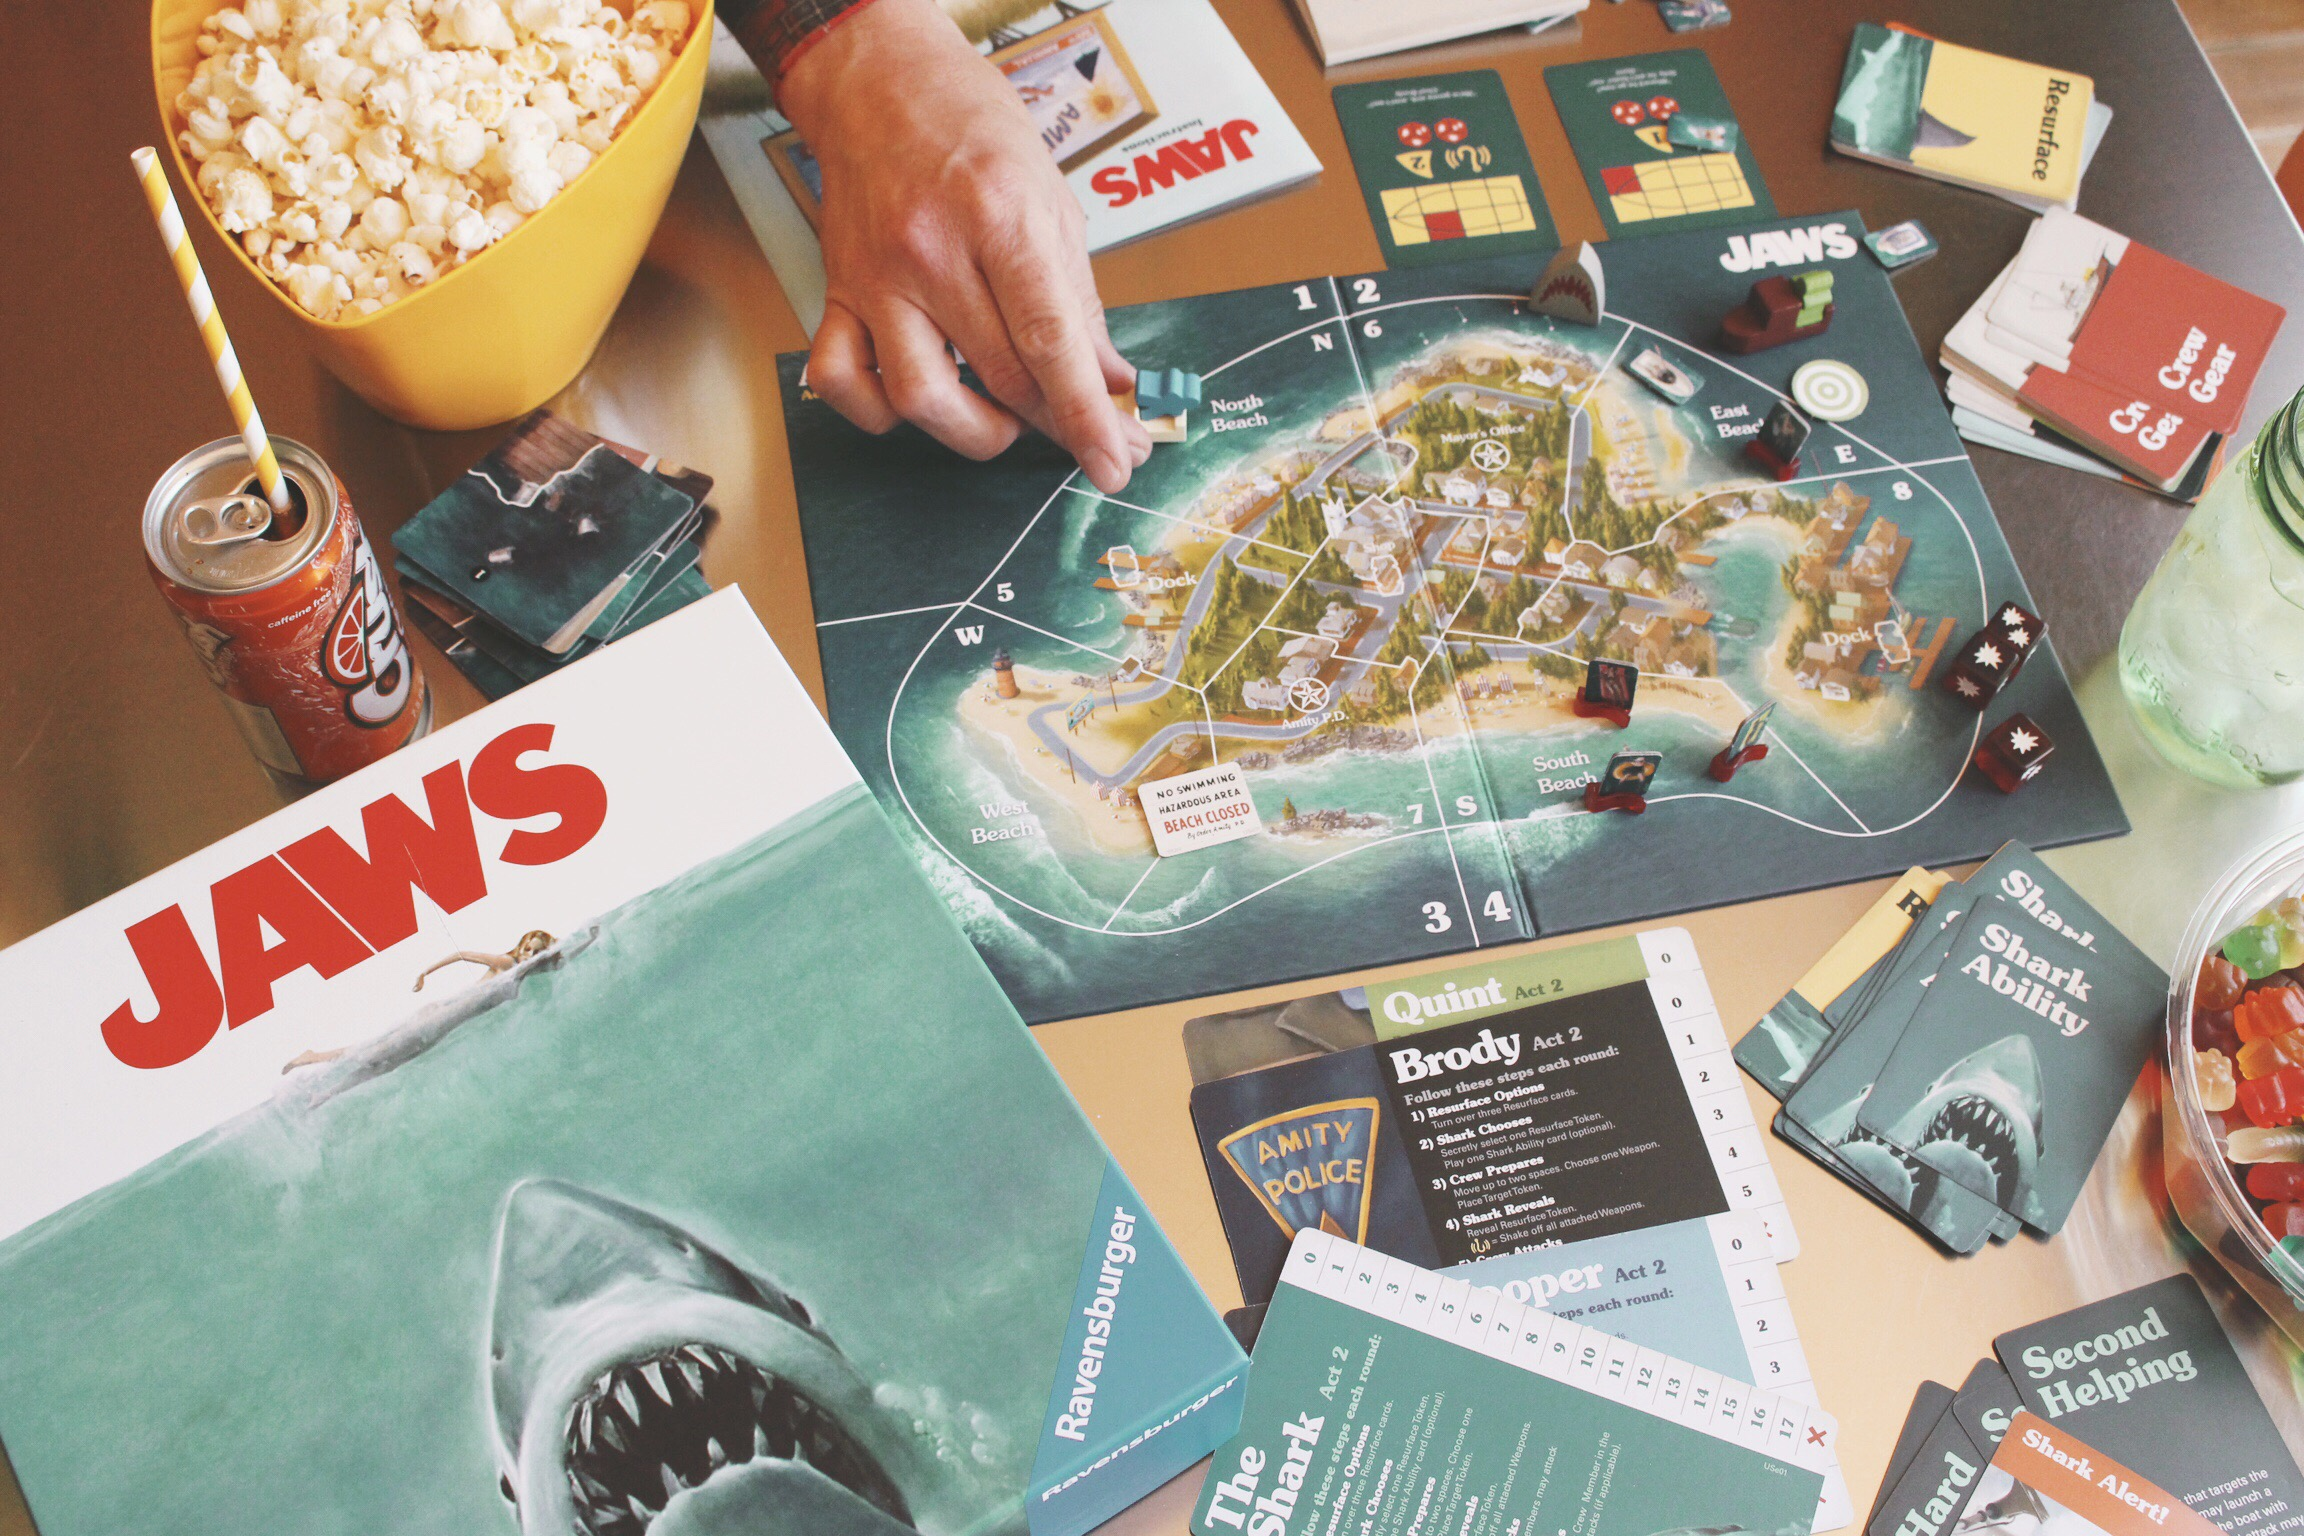 Best Board Games to Play While Self Isolating